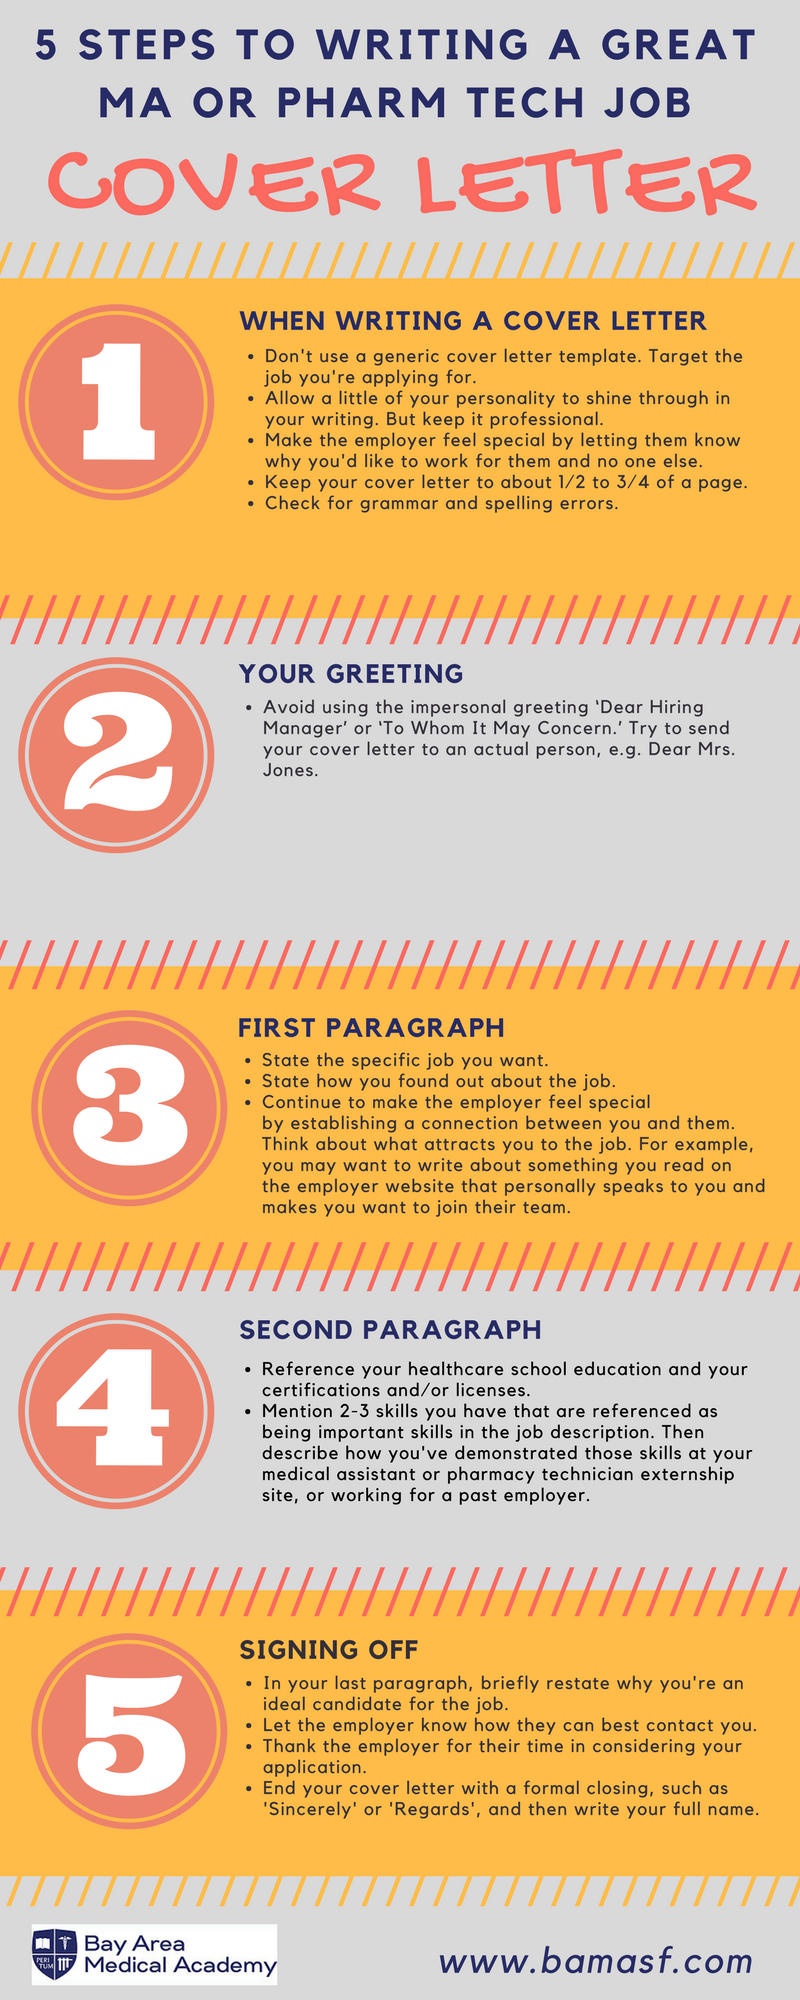 Infographic 5 steps to writing a great medical assistant or how to write a ma or pharmacy technician cover letter useg madrichimfo Image collections